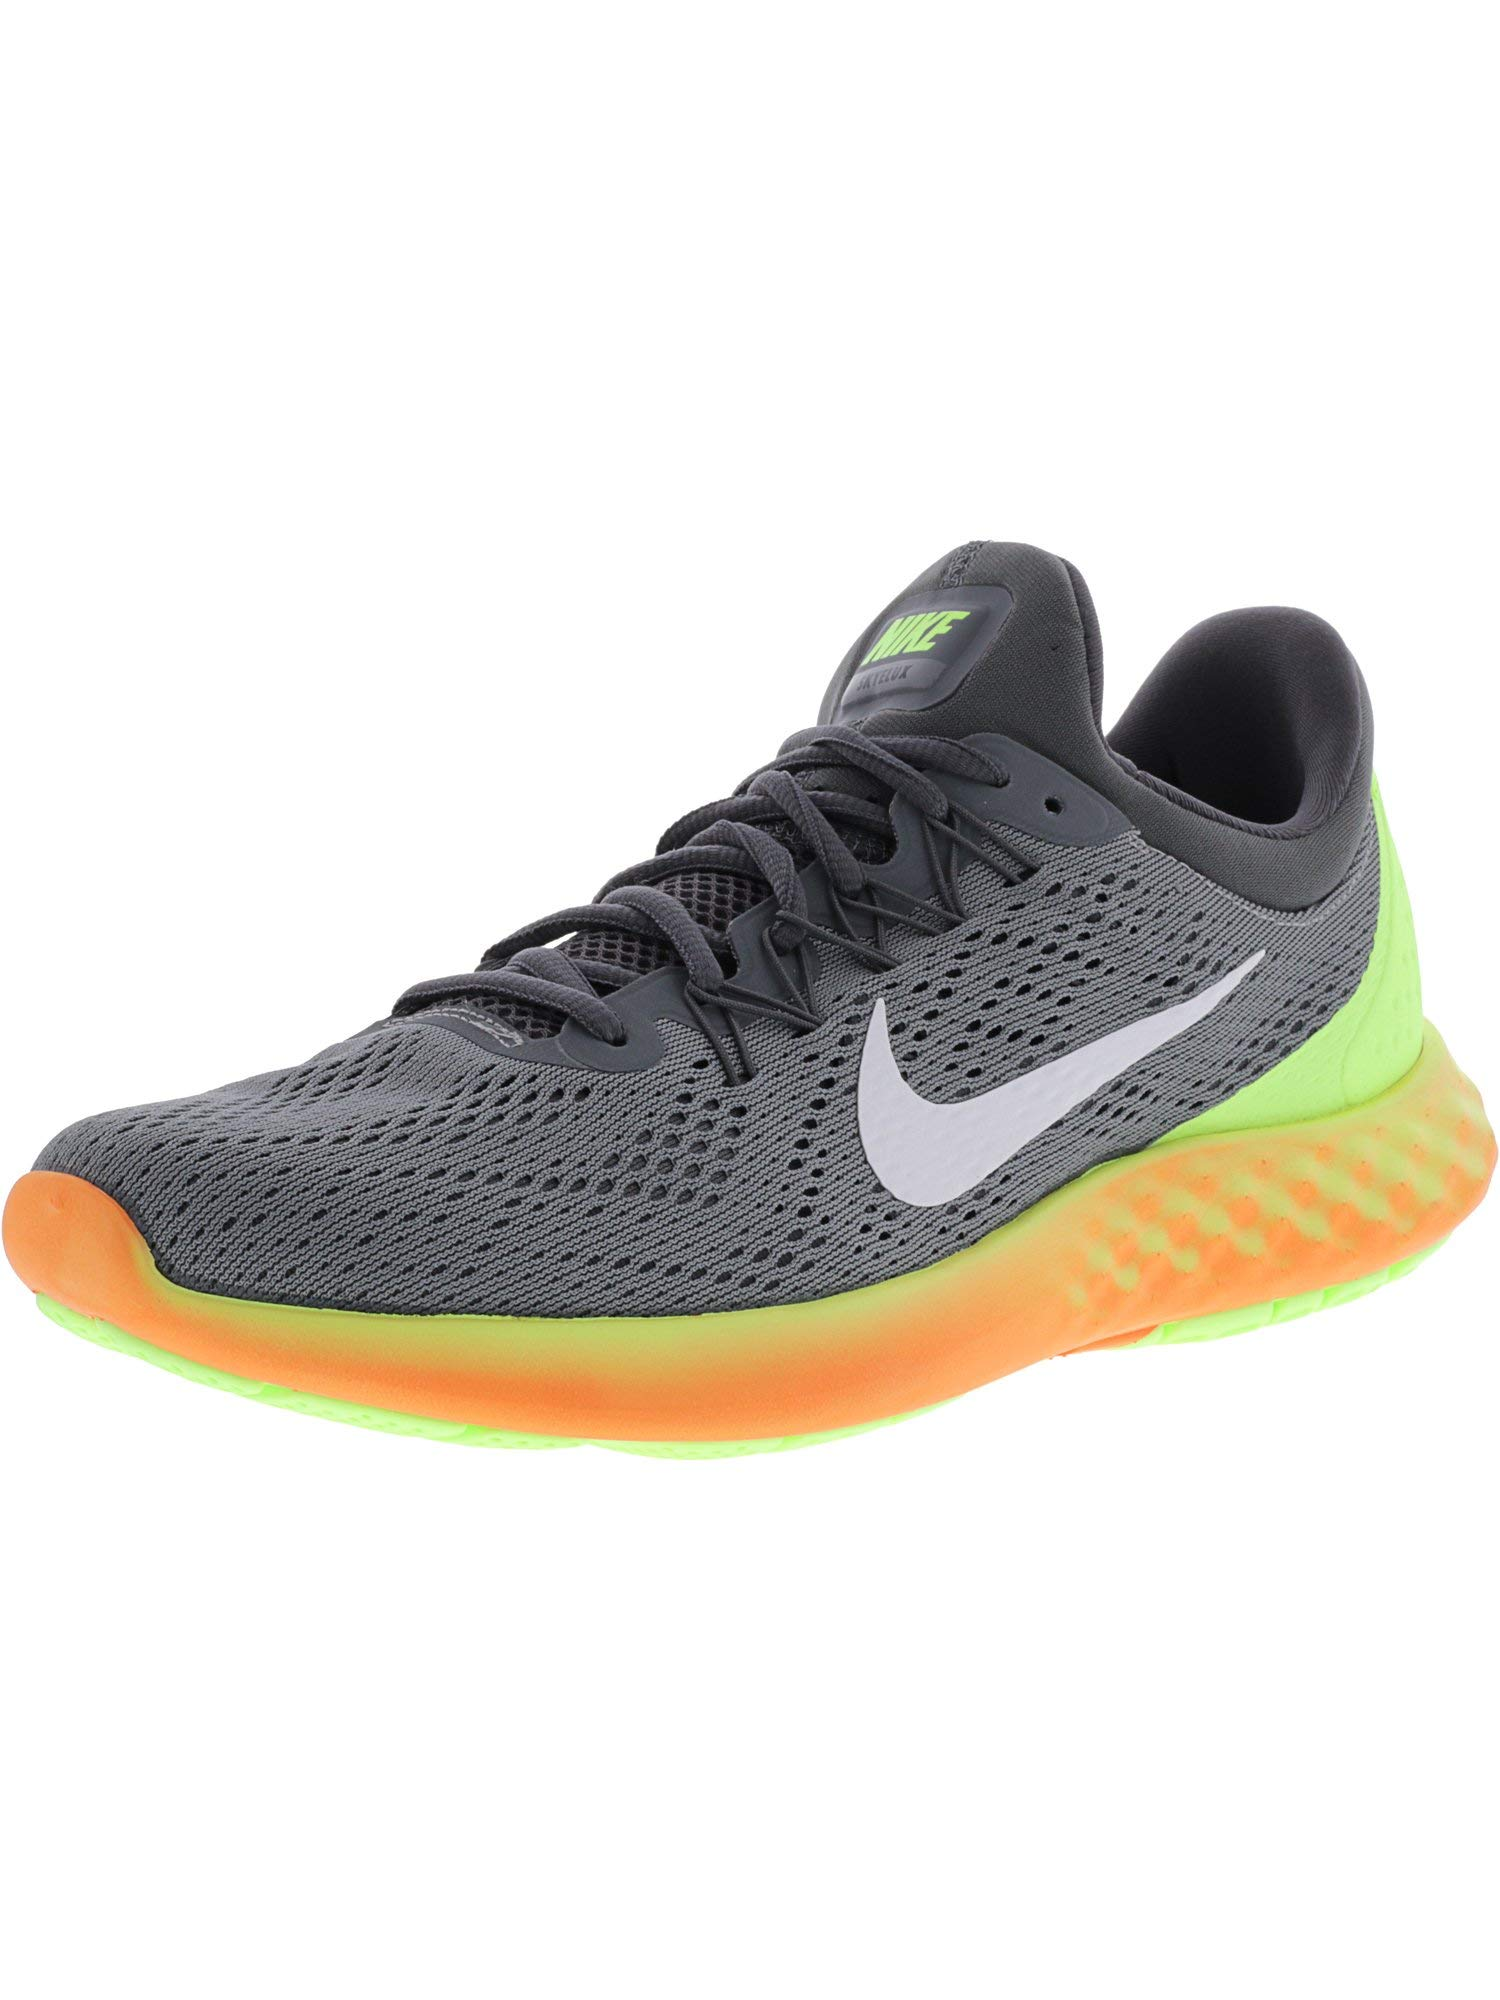 first rate 0ae72 6f5f6 Galleon - Nike Men s Lunar Skyelux Cool Grey White - Dark Volt Ankle-High  Fabric Running Shoe 9M